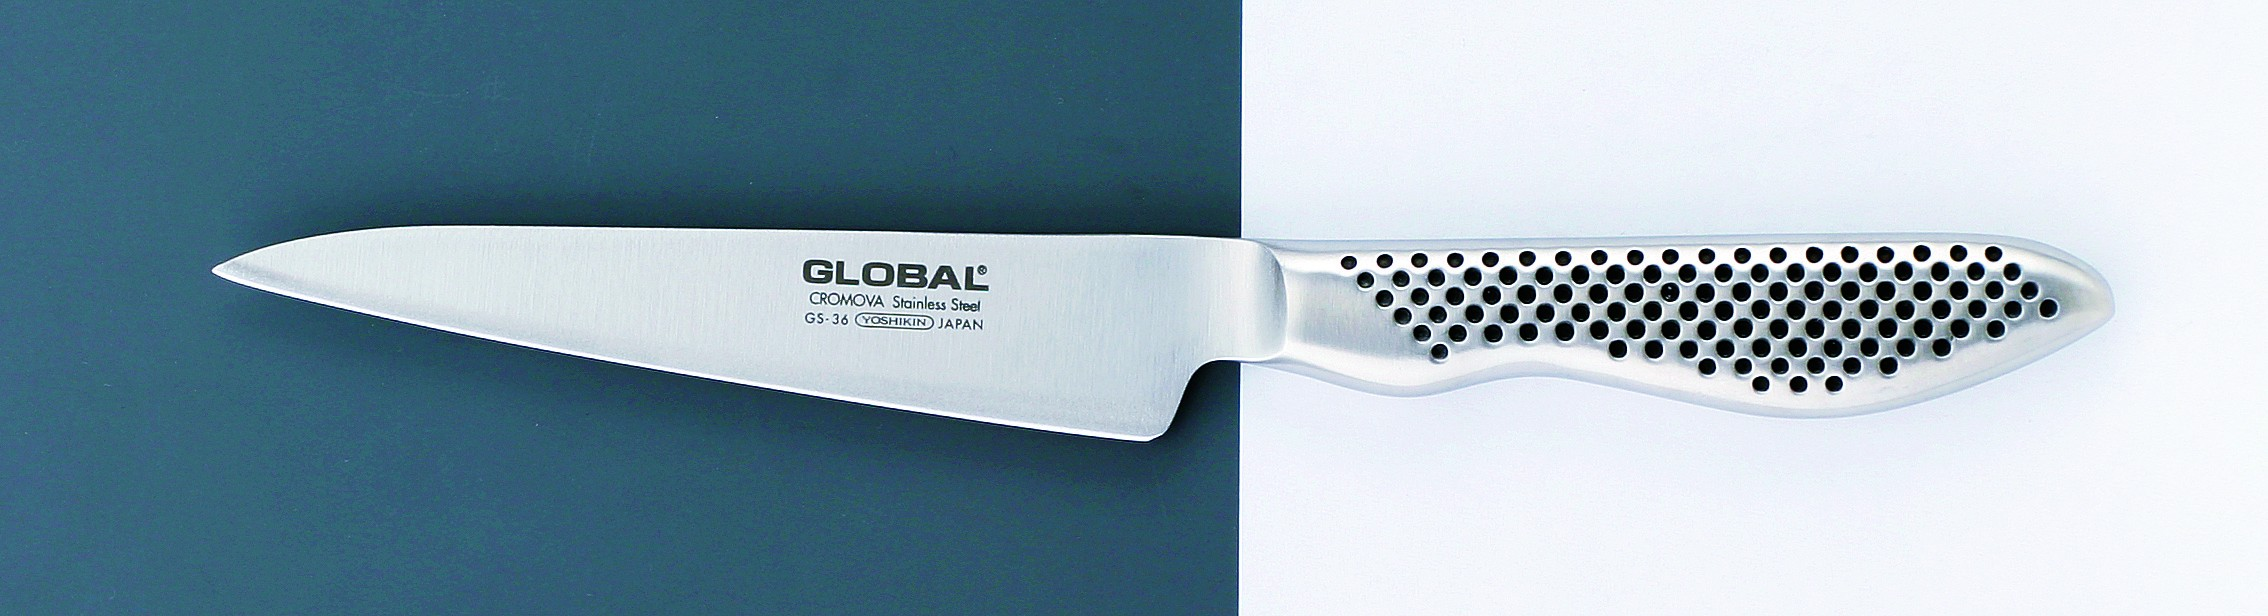 Cuchillo utilitario Global de 11 cm